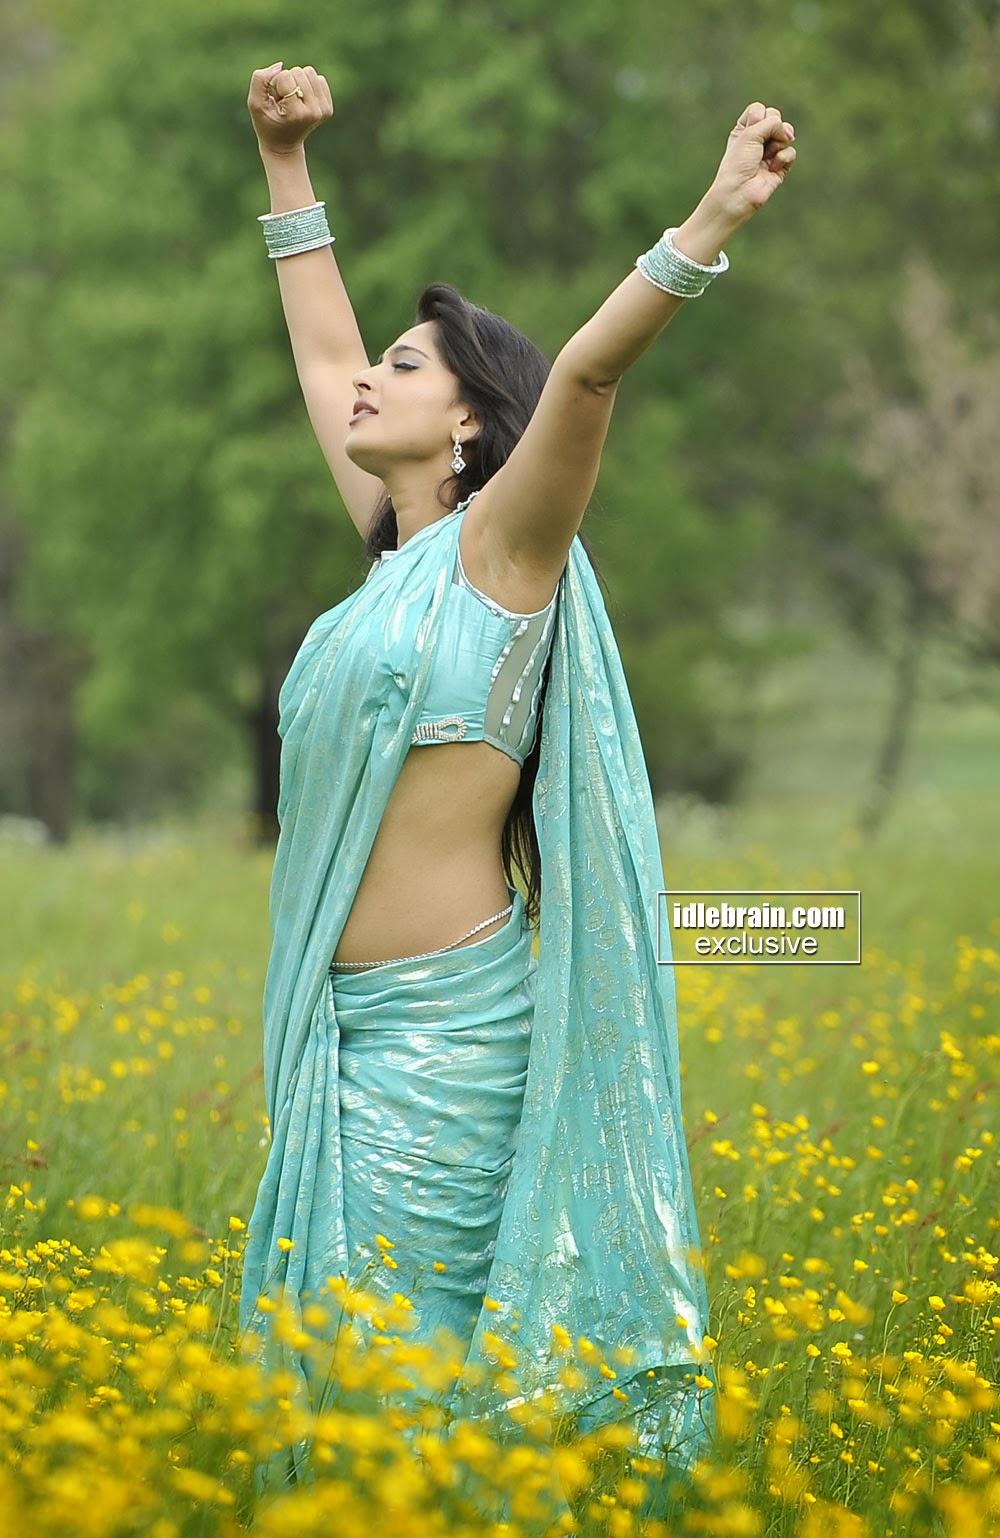 Anushka shetty cute pictures Divya - Tamil actress photos-pictures images of Tamil